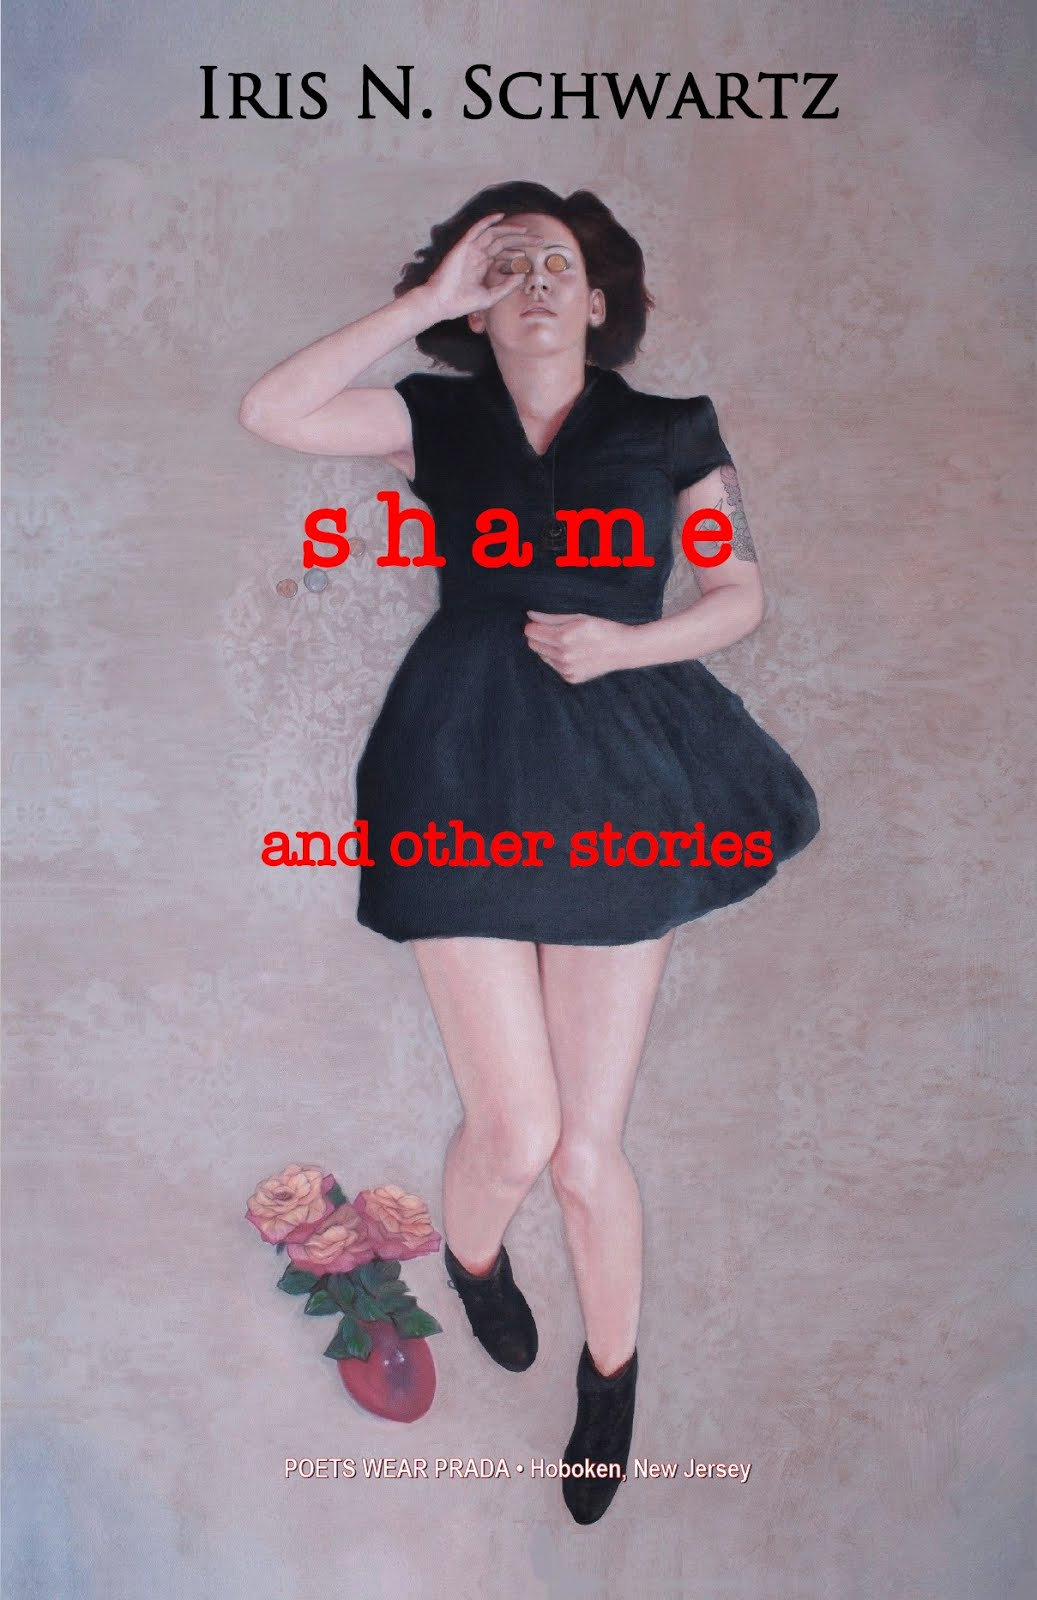 Coming Soon: More Short Fiction by Iris N. Schwartz; SHAME: And Other Stories, Due Out Winter 2019.